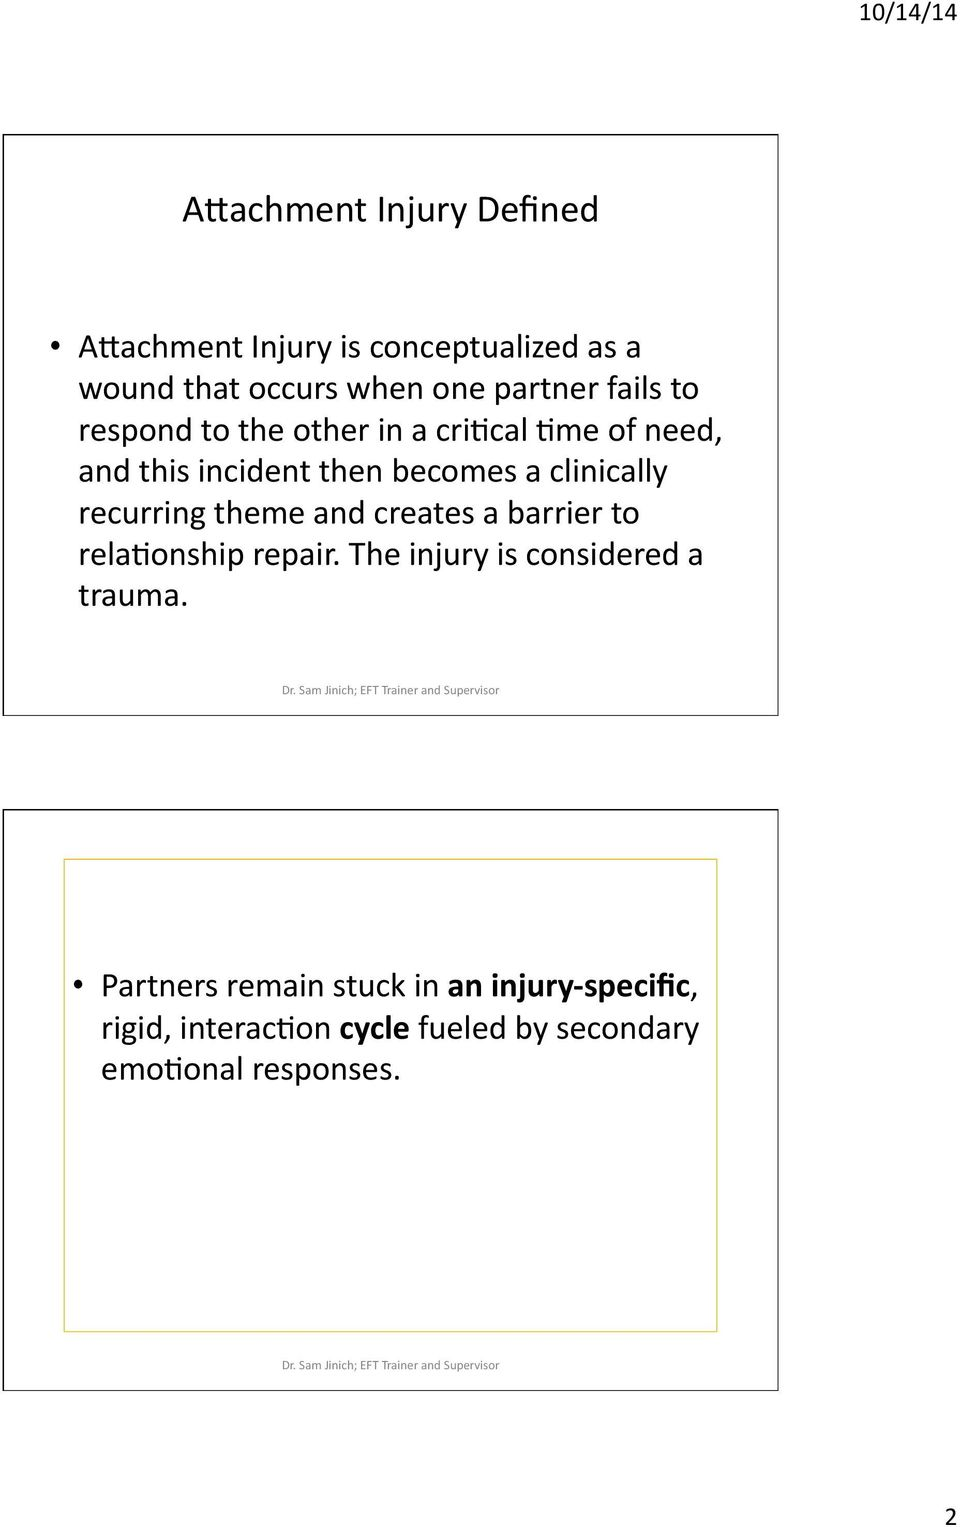 recurring theme and creates a barrier to relamonship repair. The injury is considered a trauma.